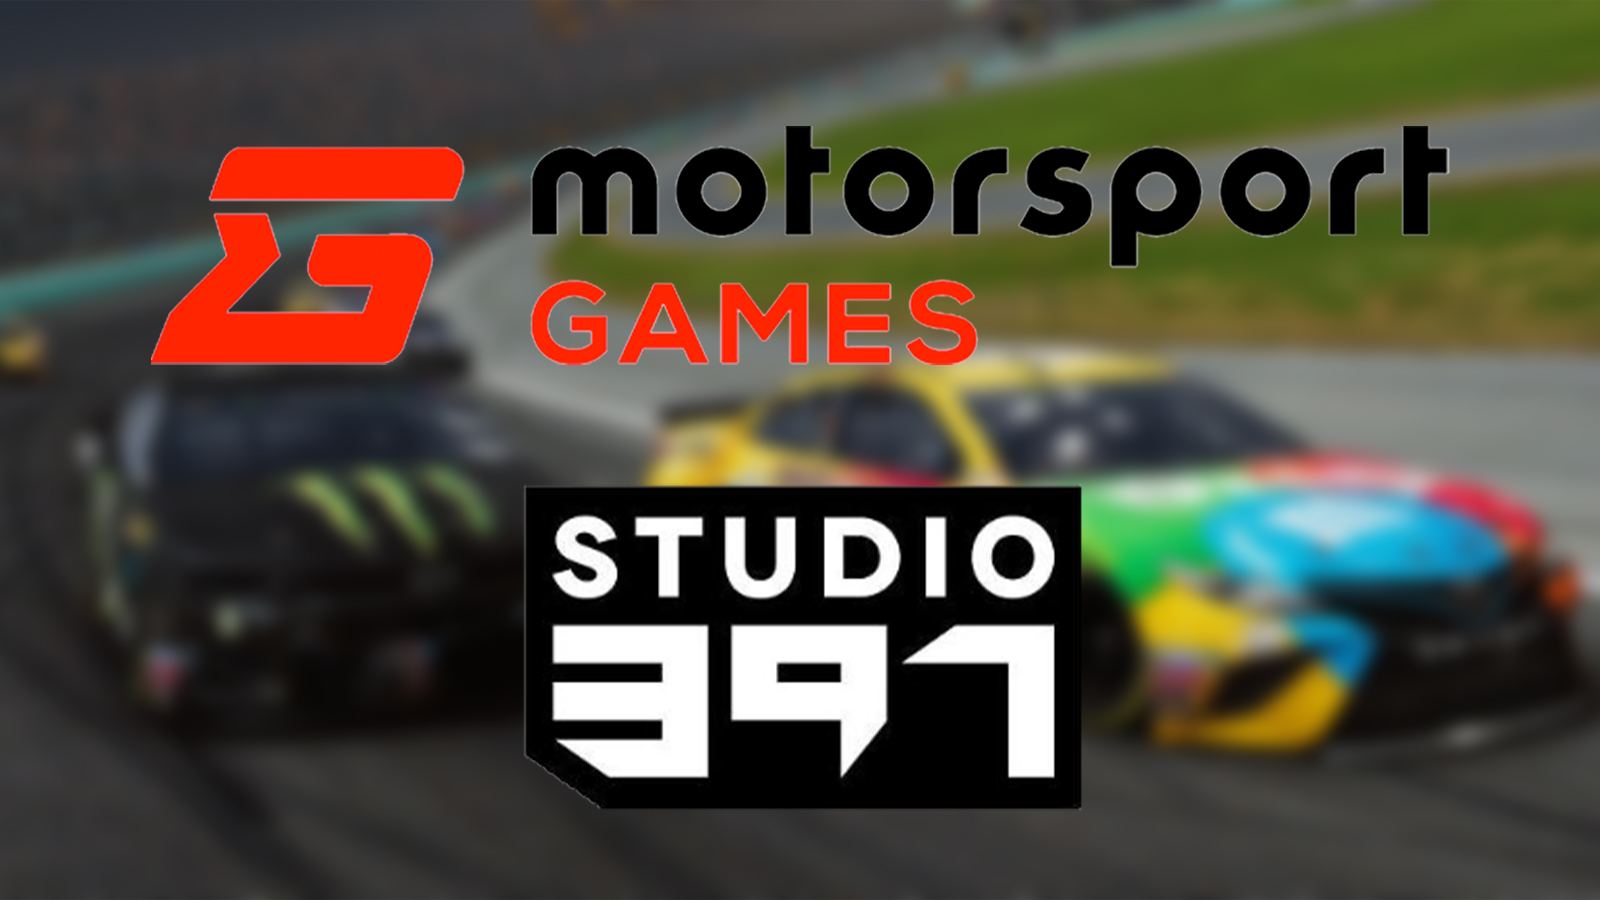 Motorsport Games studio 397 rFactor 2